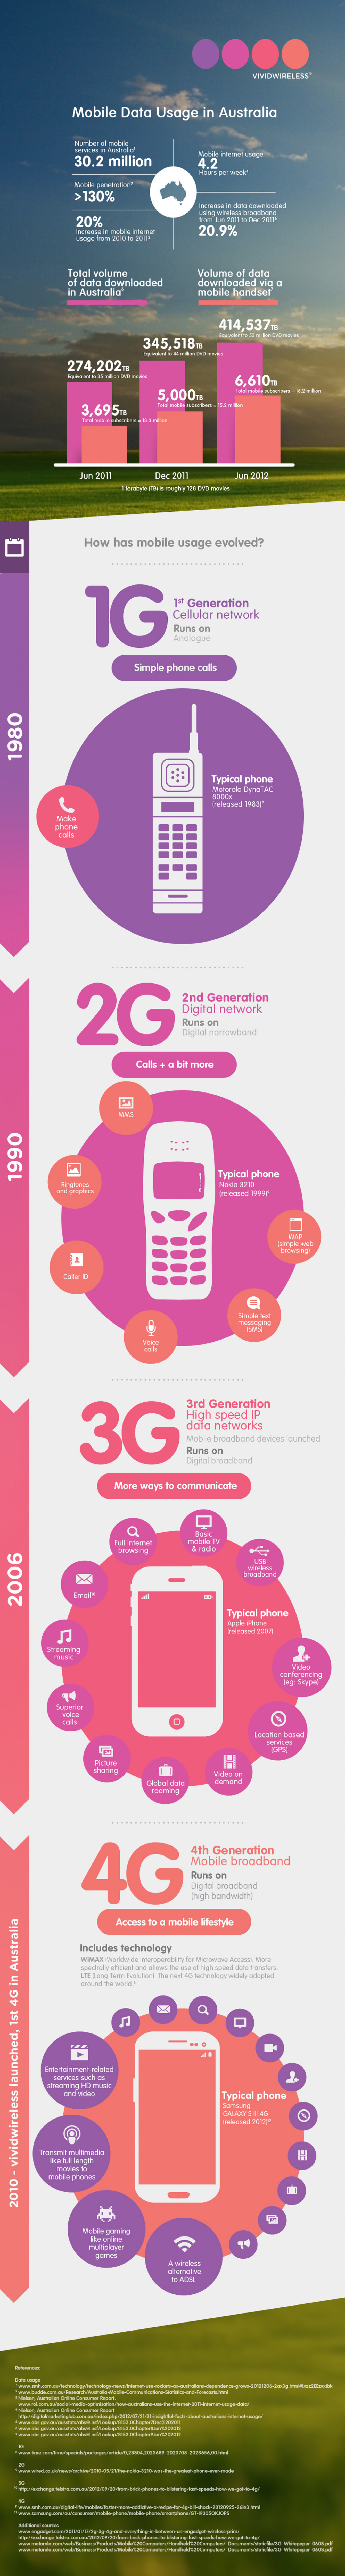 Mobile data usage in Australia 2013 Infographic